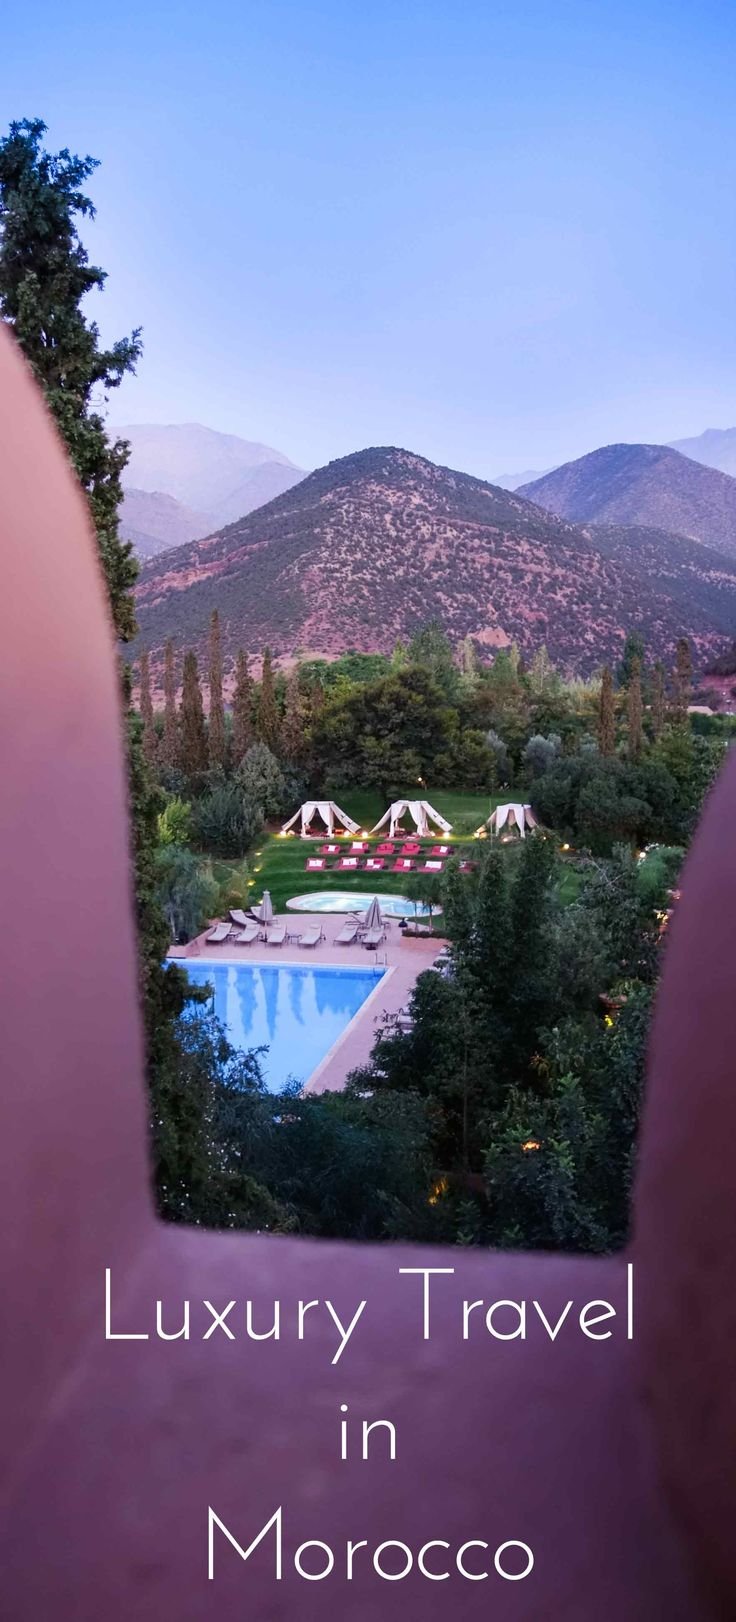 Calling all luxury travelers! Have I got some great travel advice for you. Have you been to Morocco? Might want to check out this post on my stay at Sir Richard Branson's Kasbah Tamadot, trust me, you'll want to go. Click through to check it out.